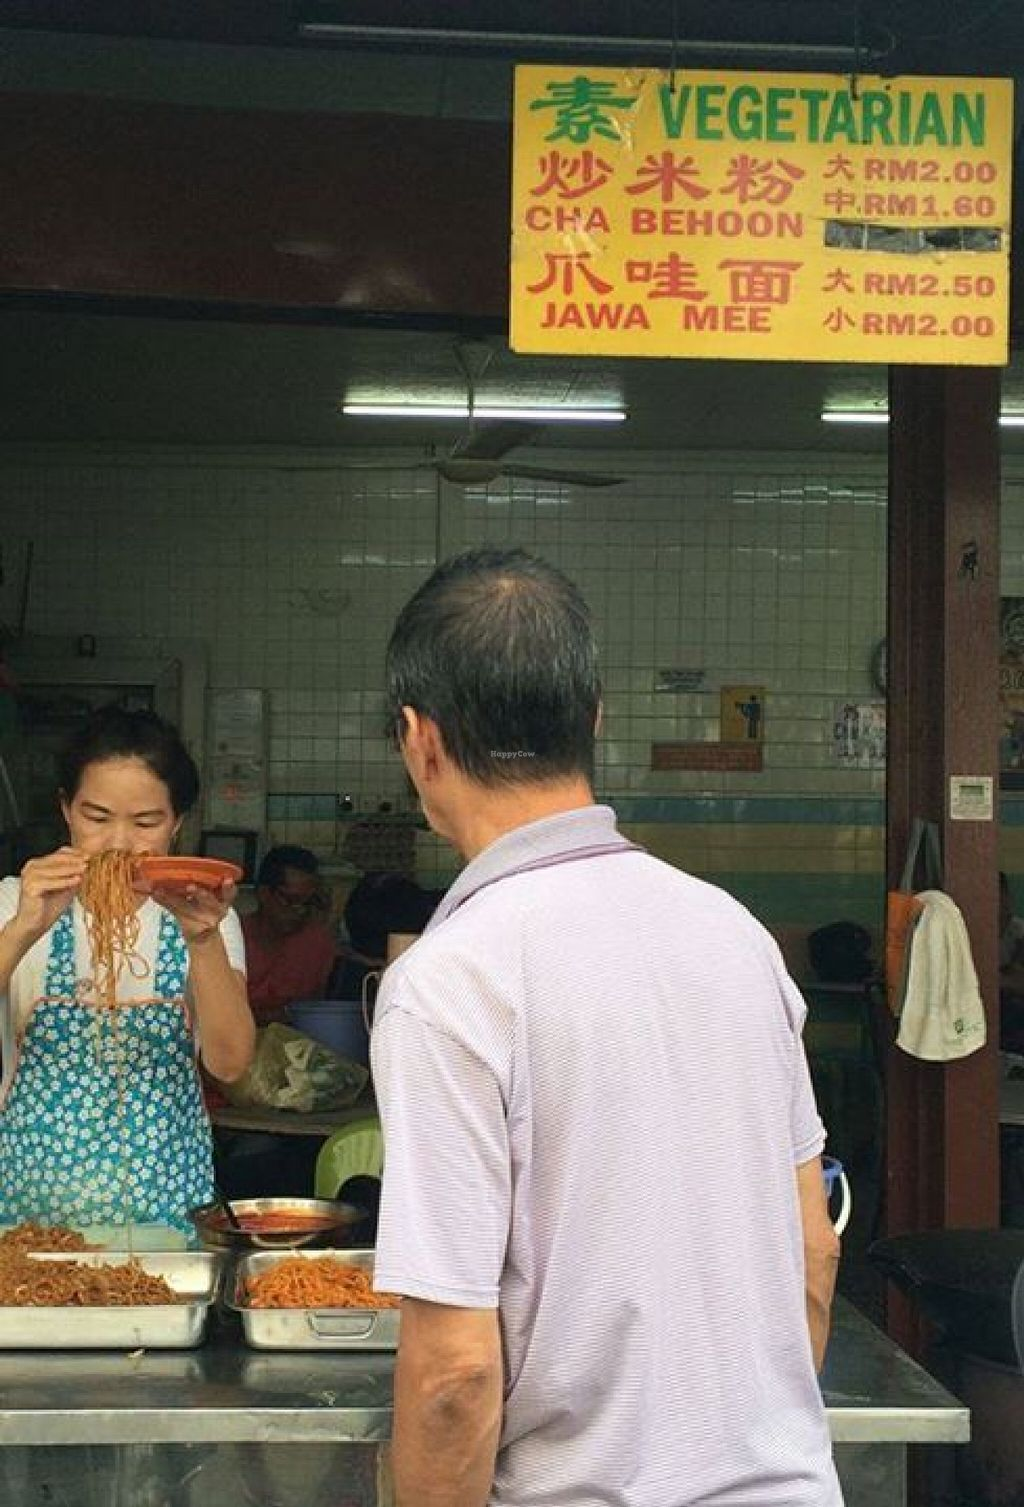 """Photo of Vegetarian Noodle Stall  by <a href=""""/members/profile/walter007"""">walter007</a> <br/>stall <br/> September 26, 2015  - <a href='/contact/abuse/image/63896/119245'>Report</a>"""